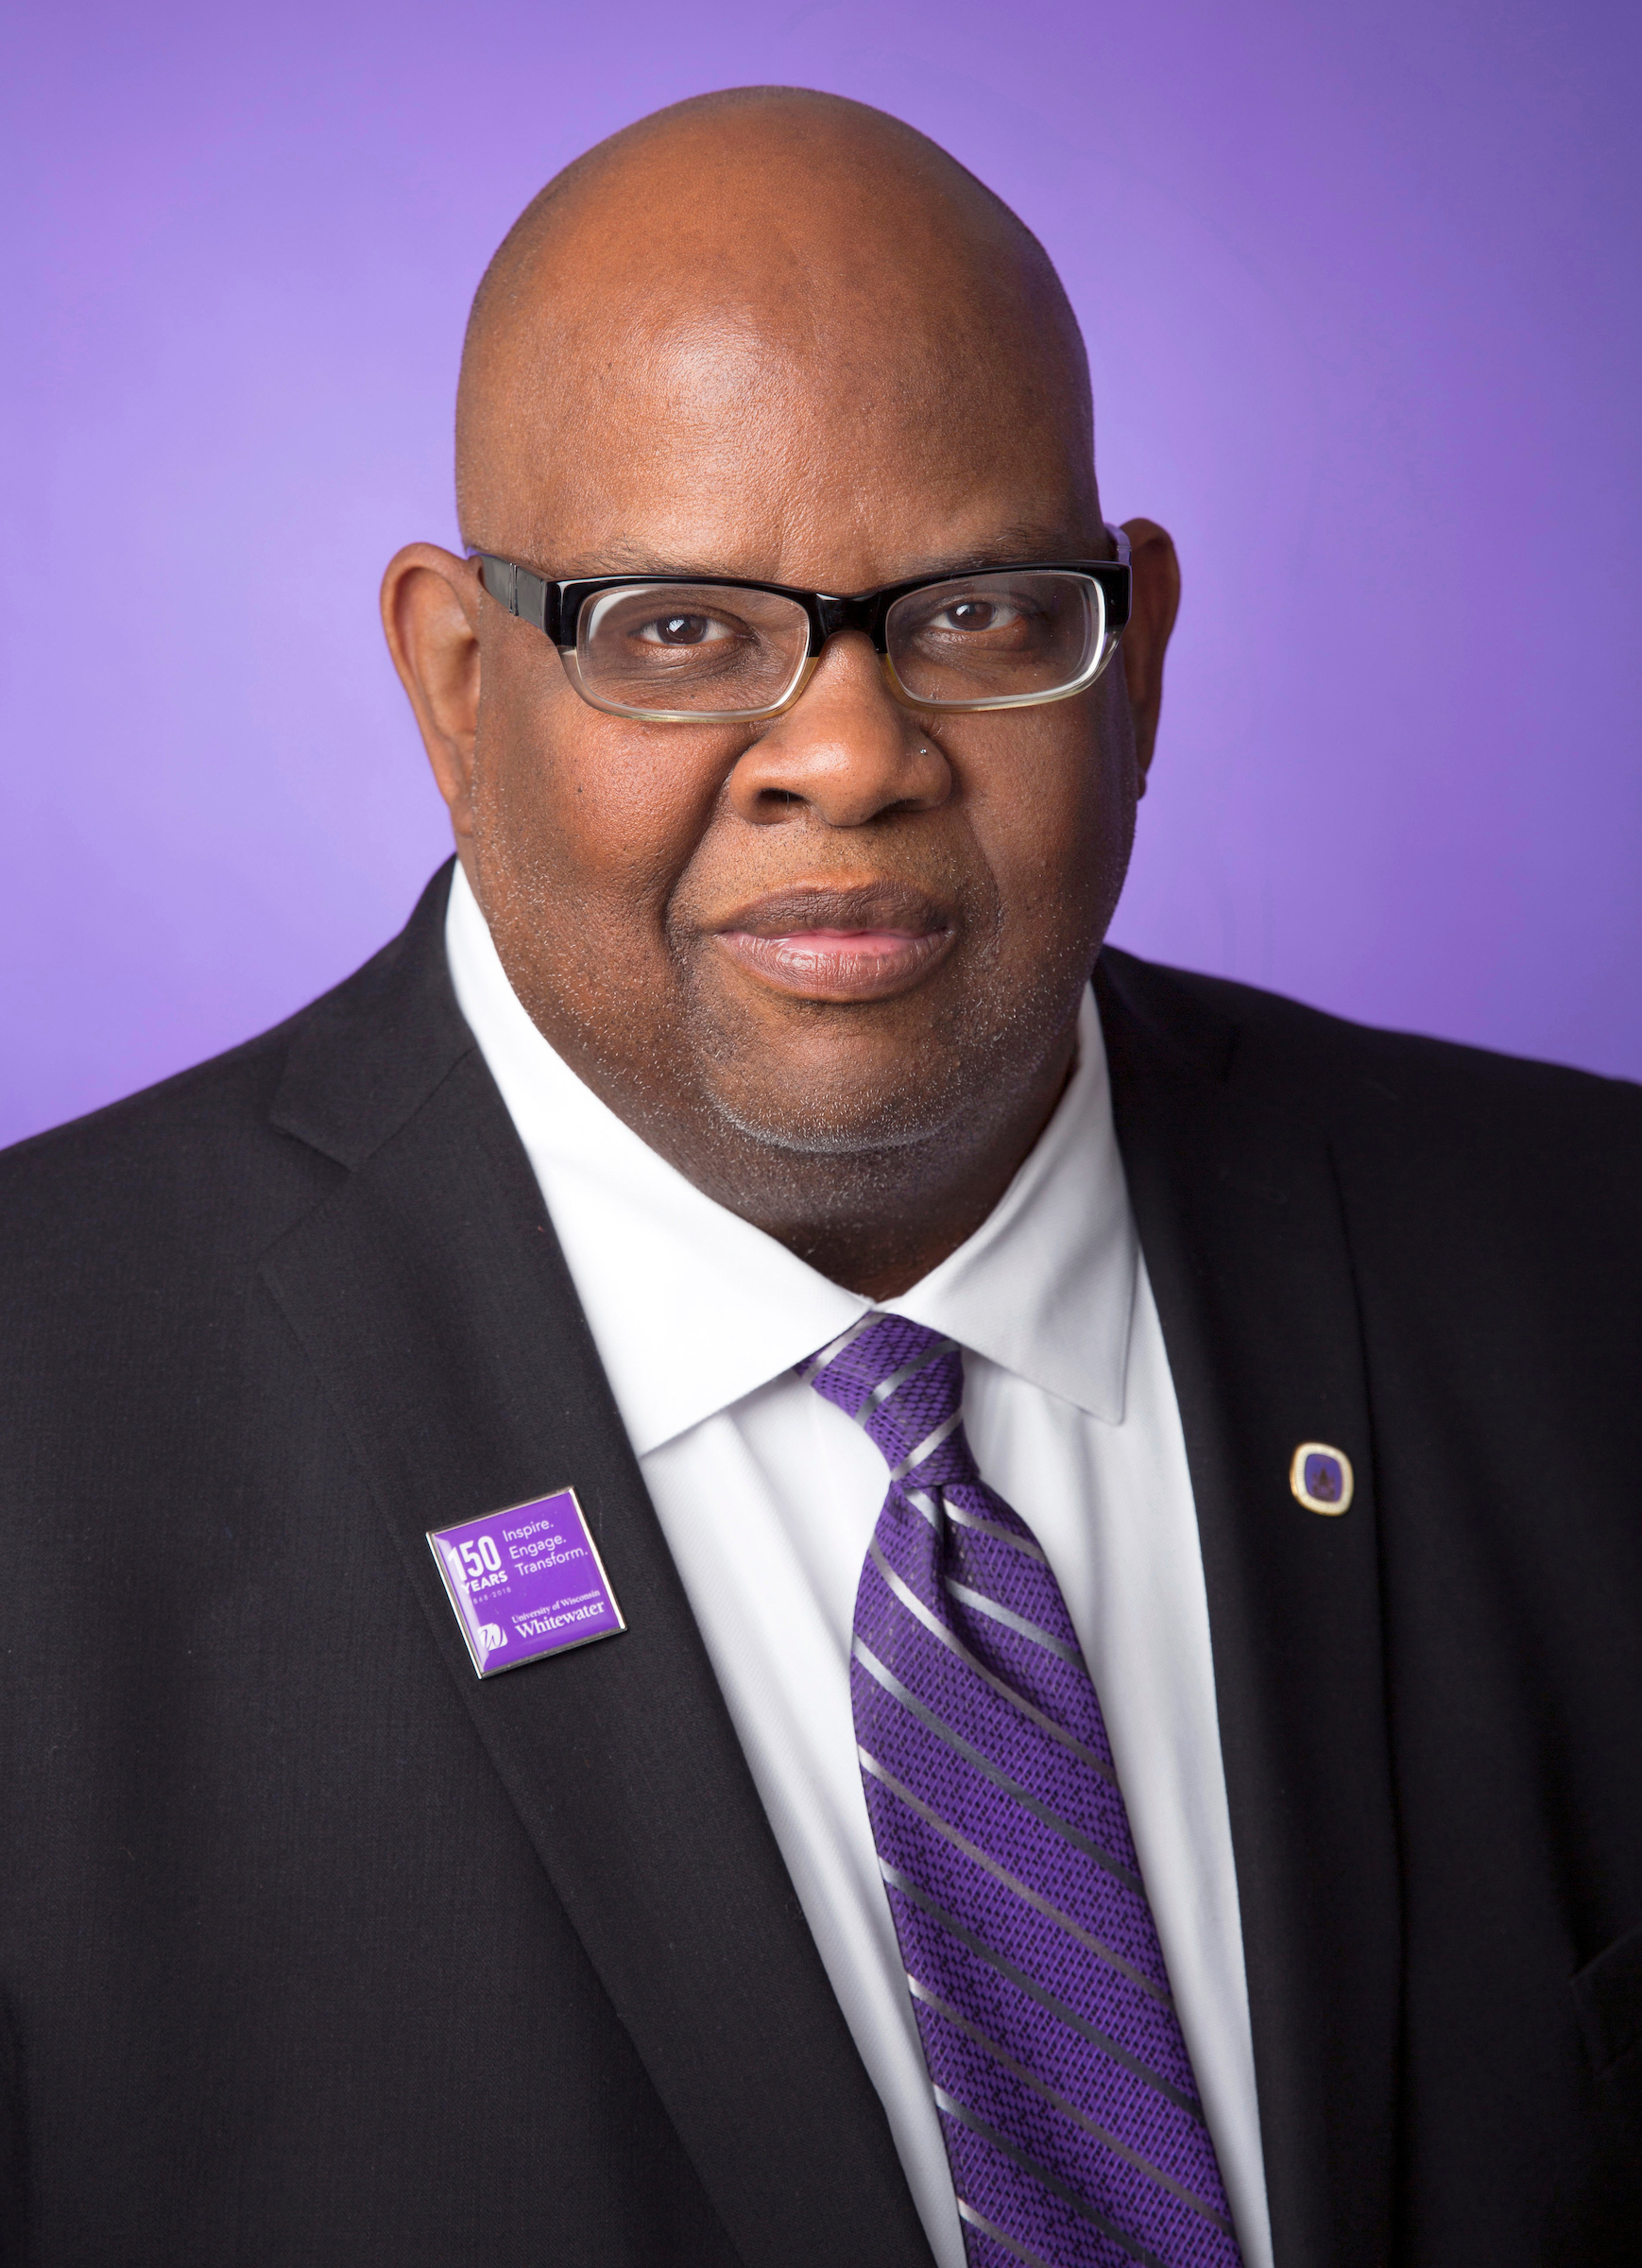 Photo of UW-Whitewater Chancellor Dwight C. Watson